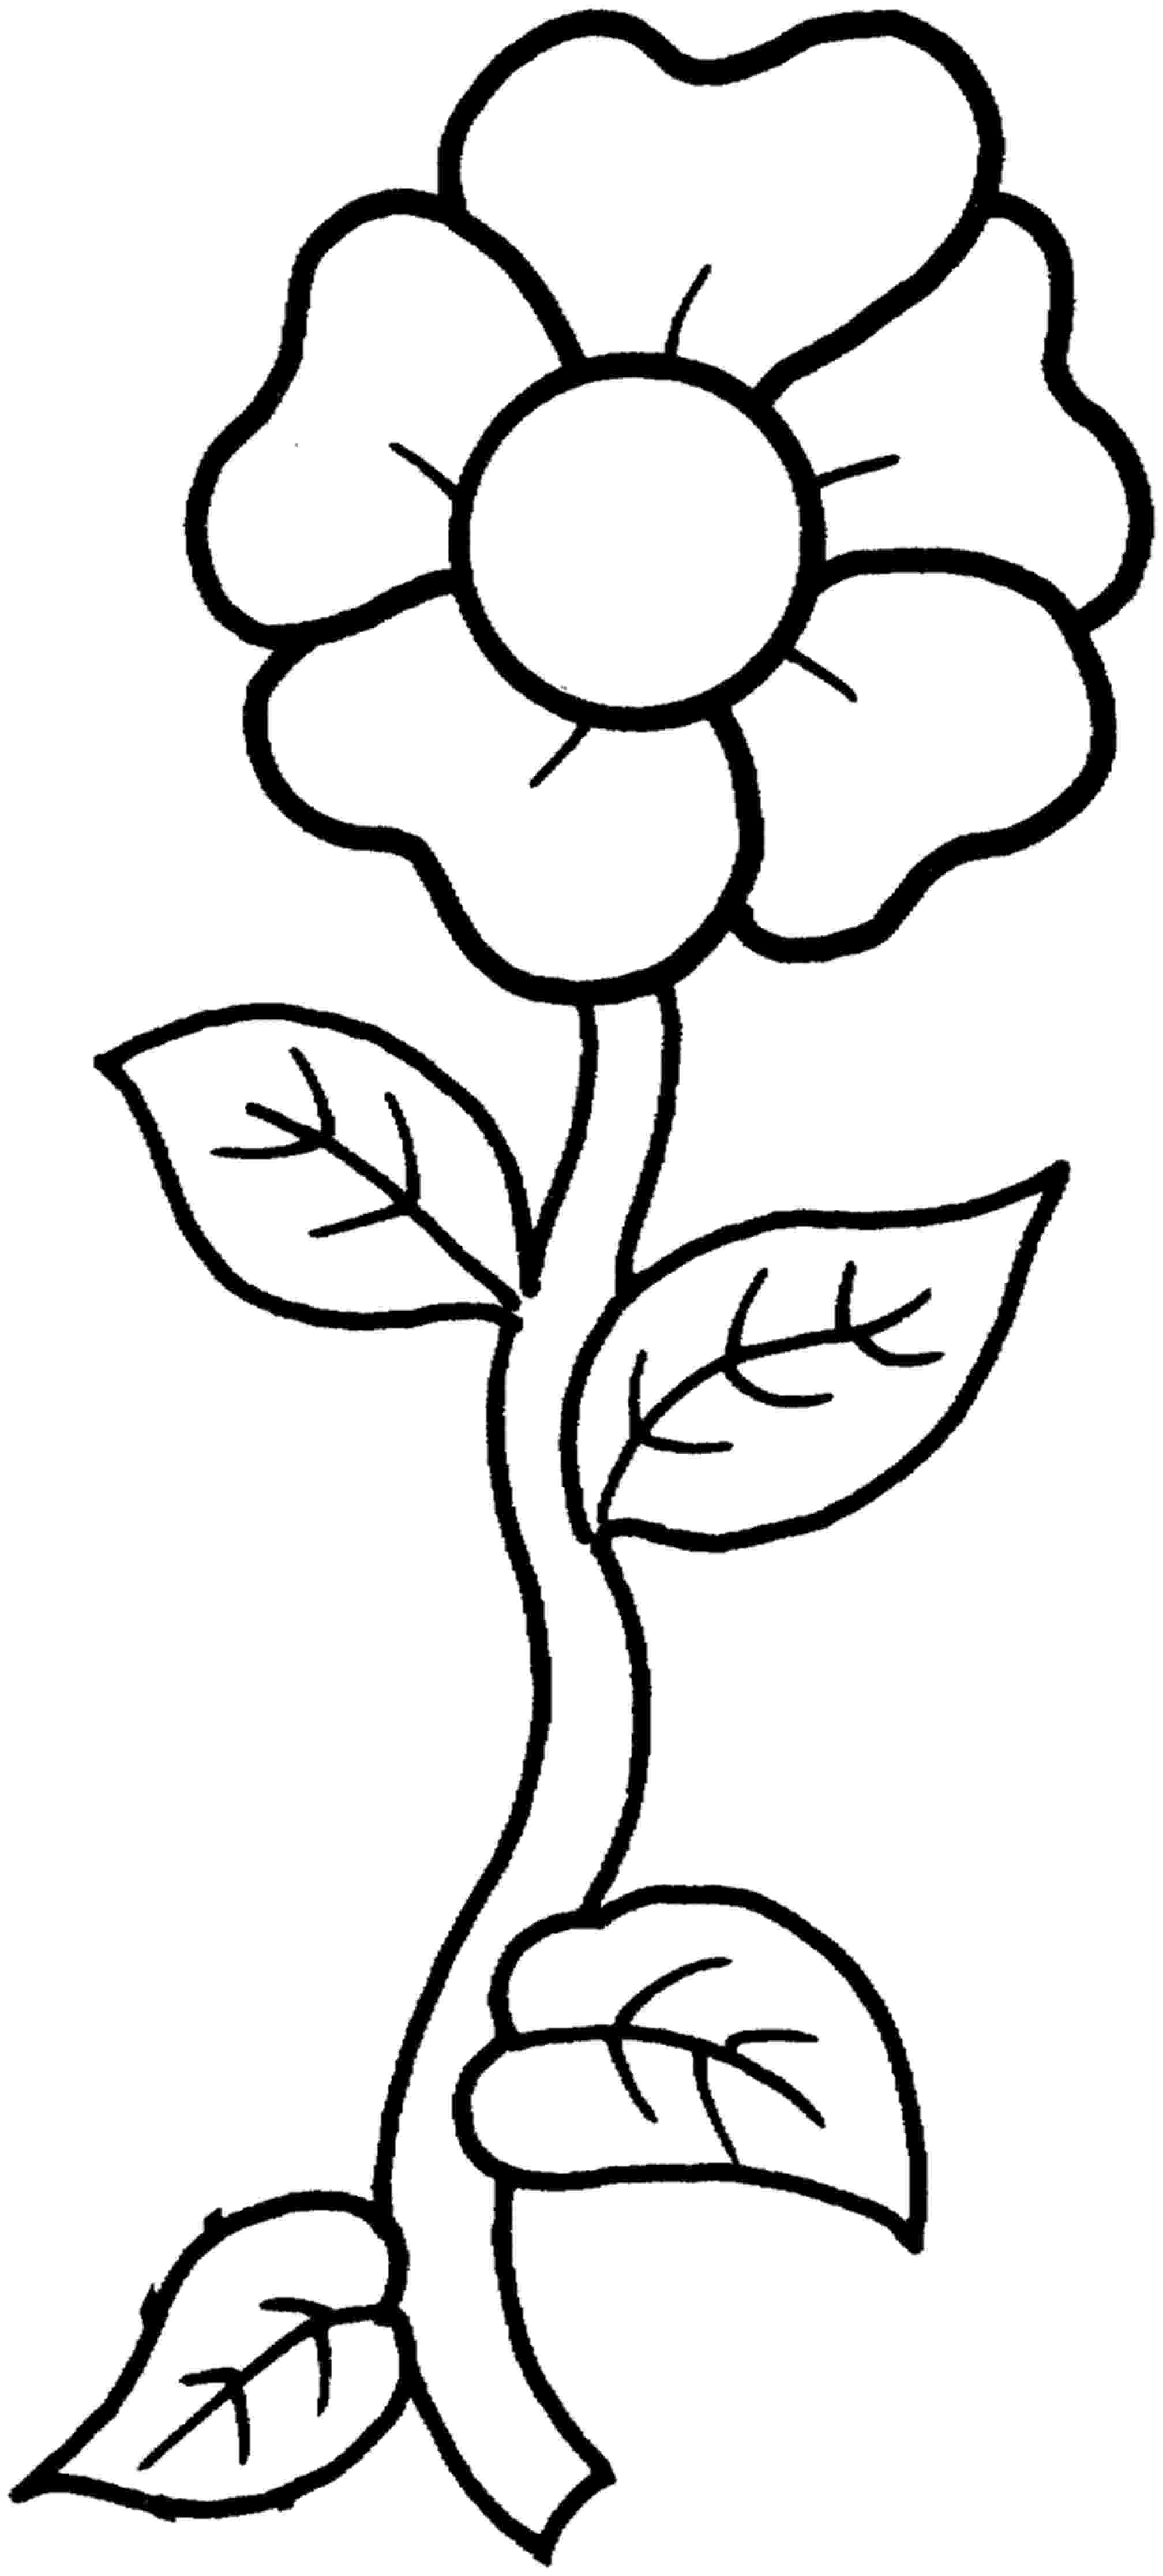 flower coloring pages printables free printable flower coloring pages for kids best flower coloring pages printables